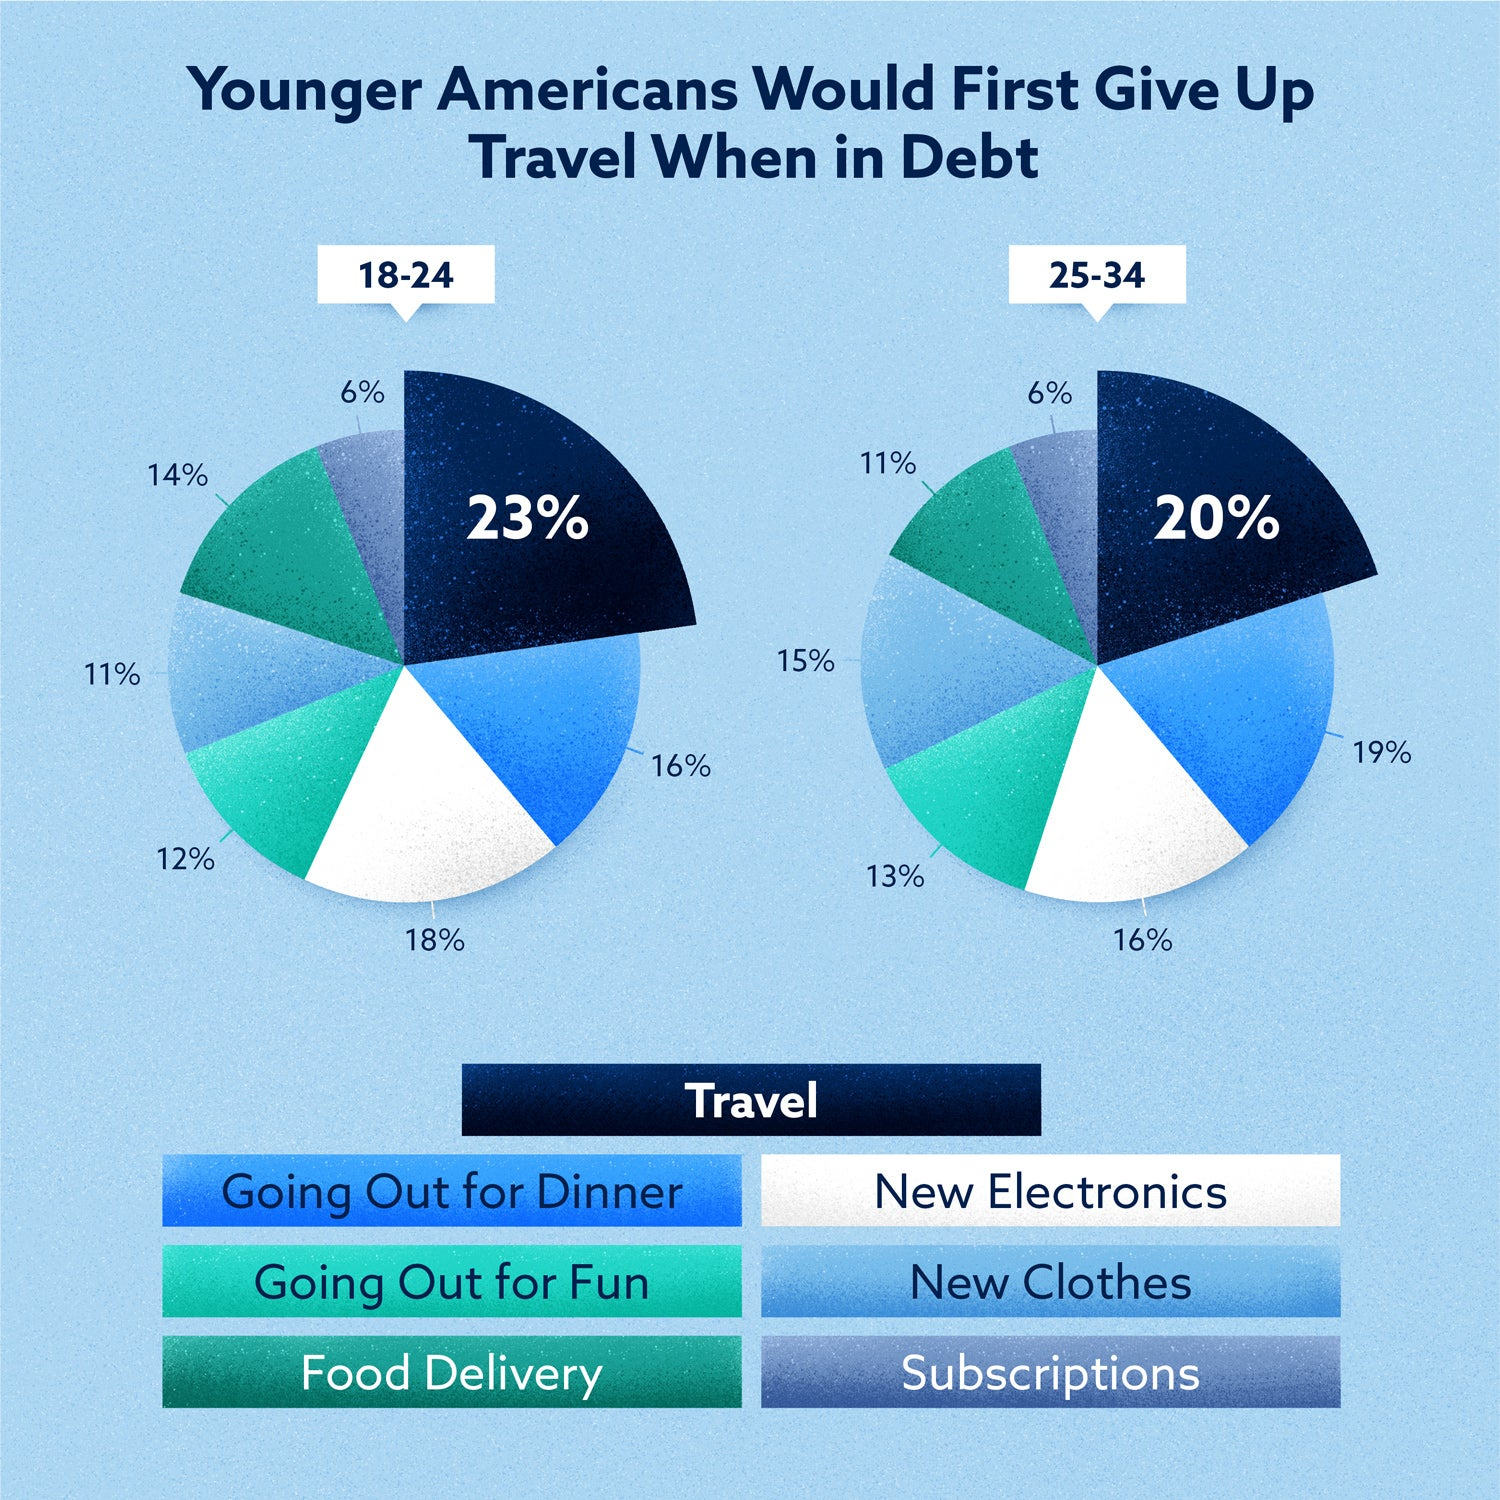 younger americans would first give up travel when in debt